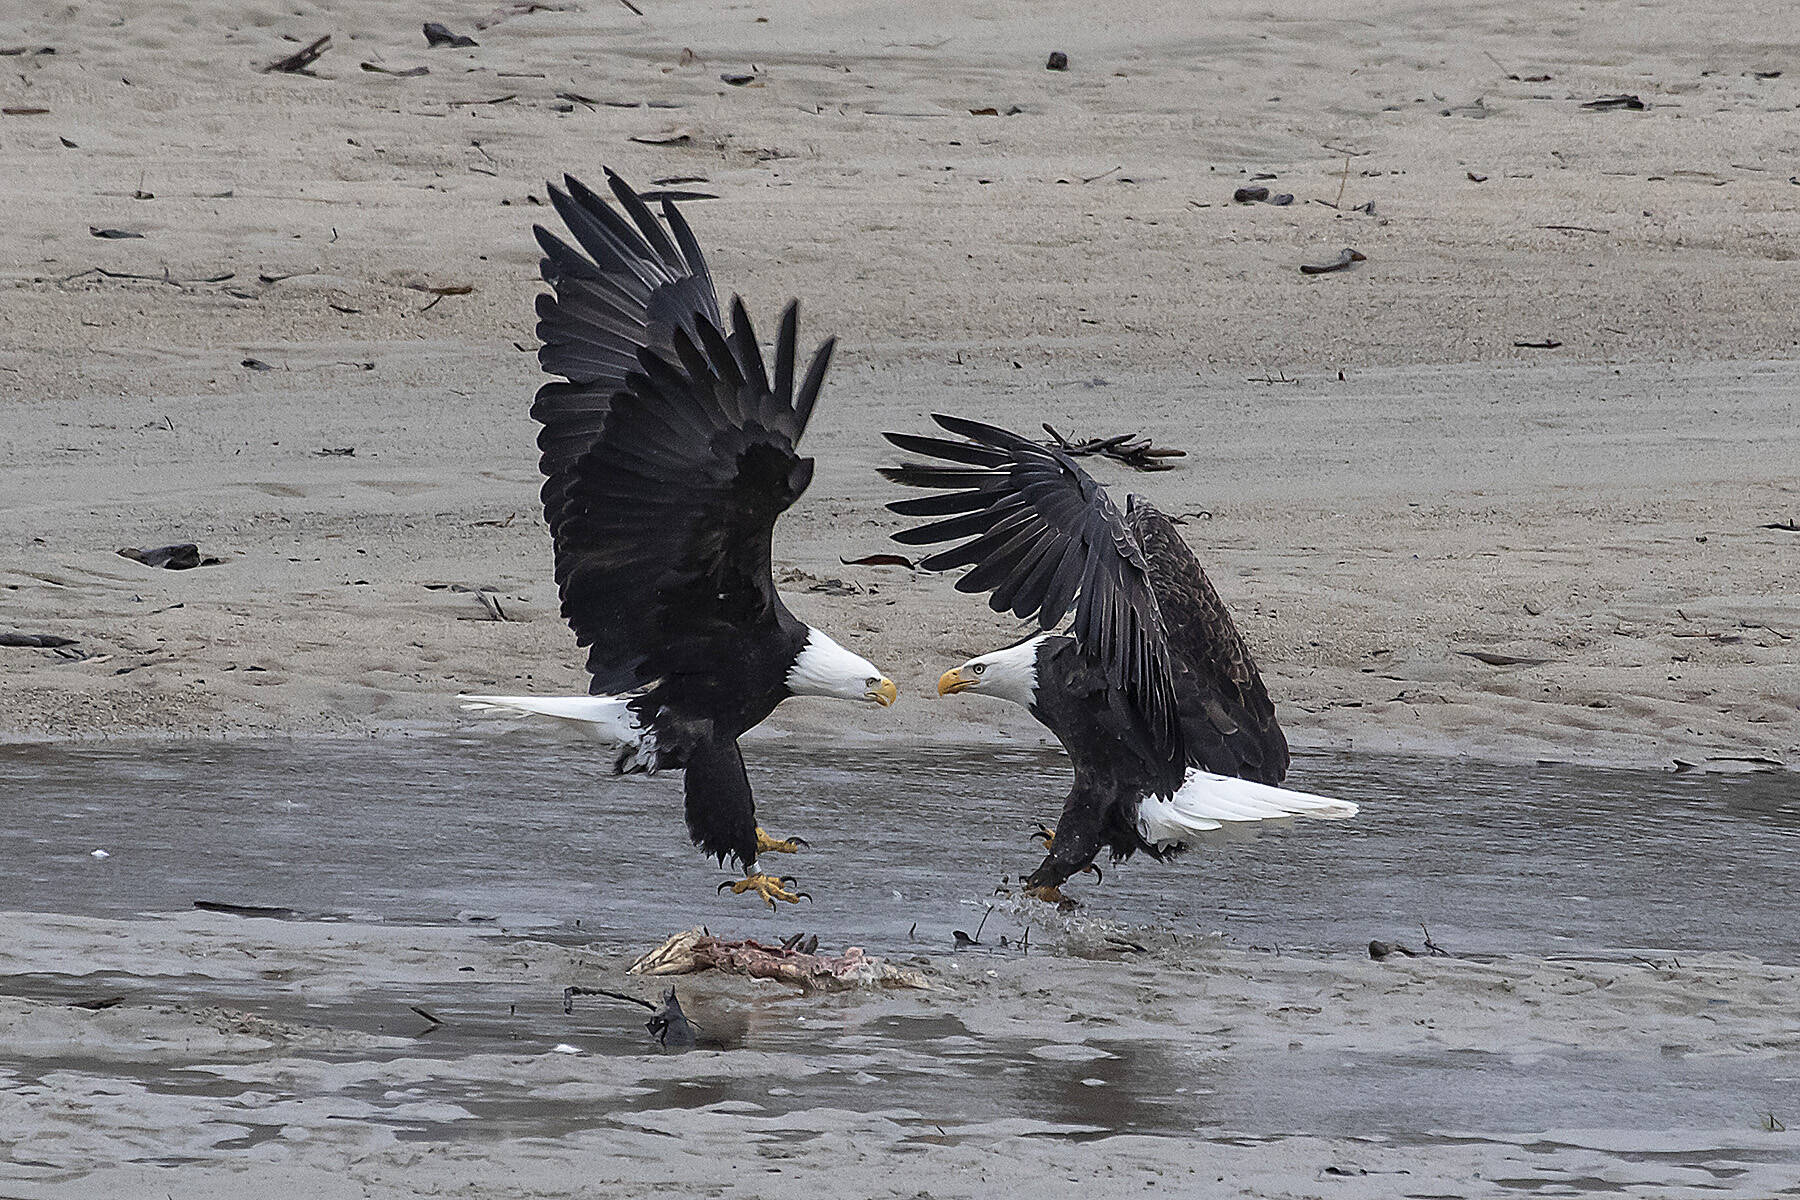 Though the Fraser Valley Bald Eagle Festival is gone, the Season of the Wild hosted by Tourism Harrison River Valley aims to act as its spiritual successor and build on the legacy of wildlife awareness and conservation. (Bob Friesen File Photo)